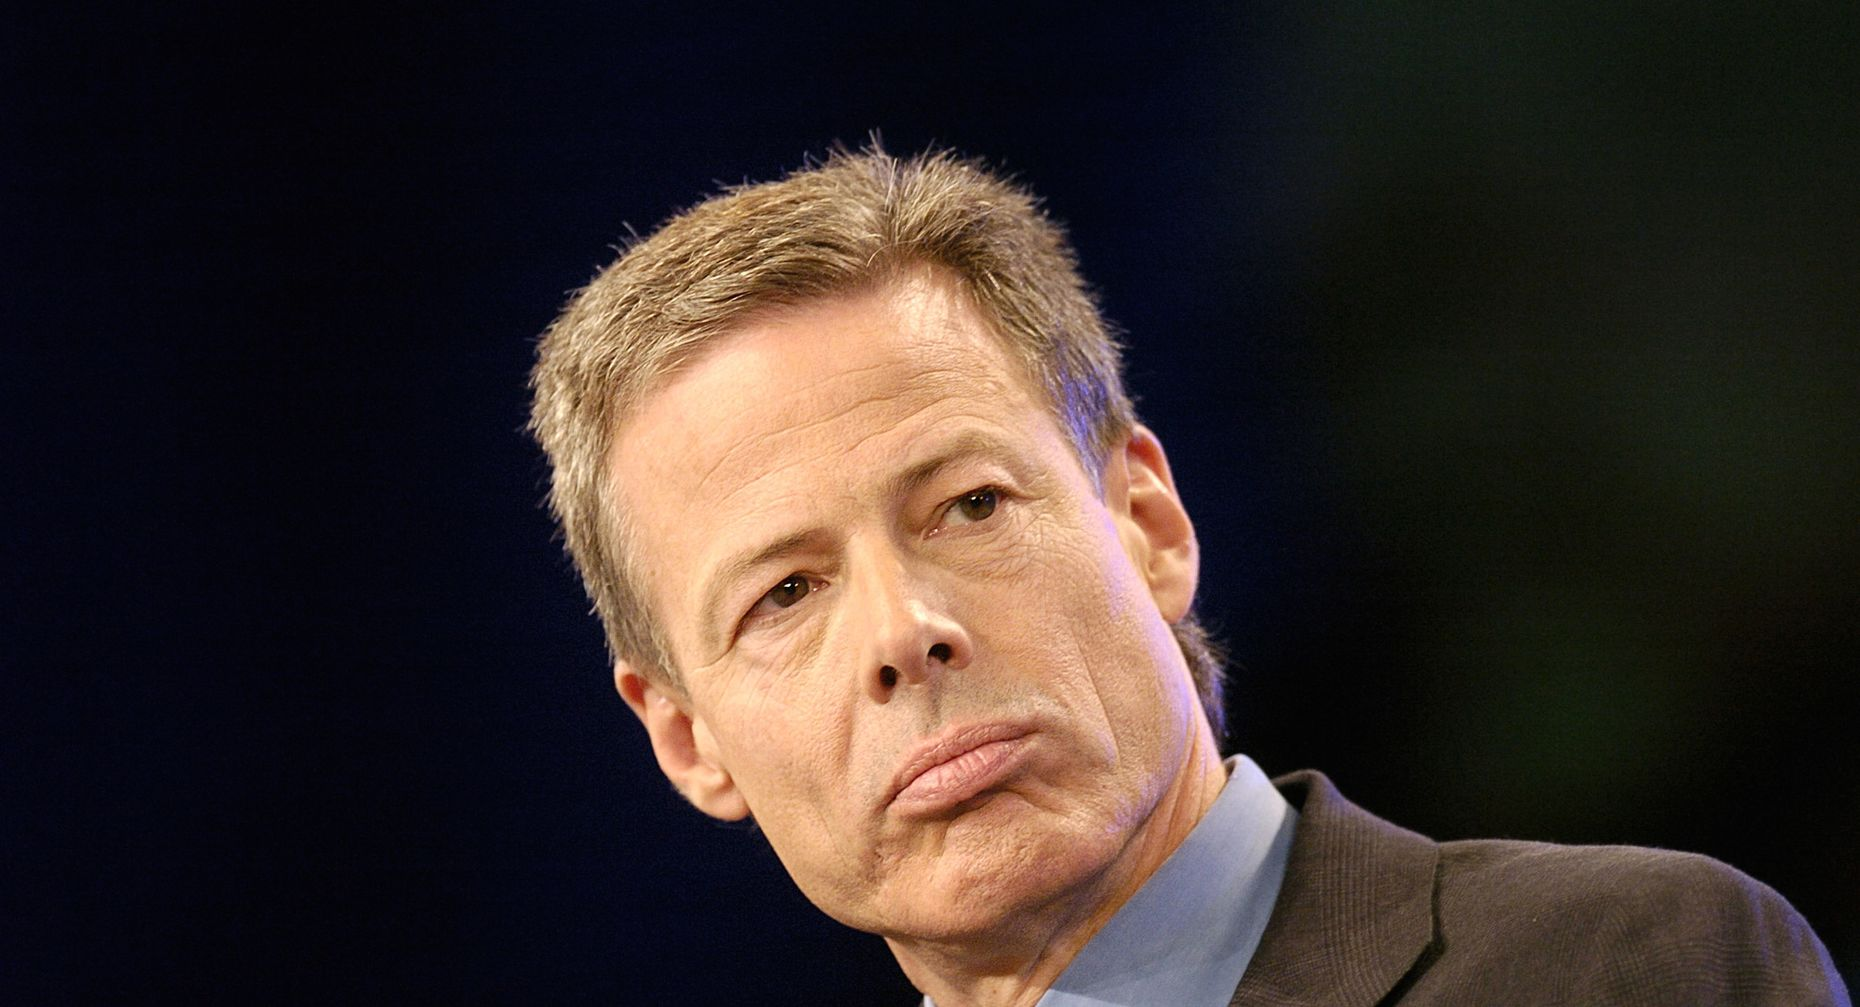 Time Warner CEO Jeff Bewkes. Photo by Bloomberg.